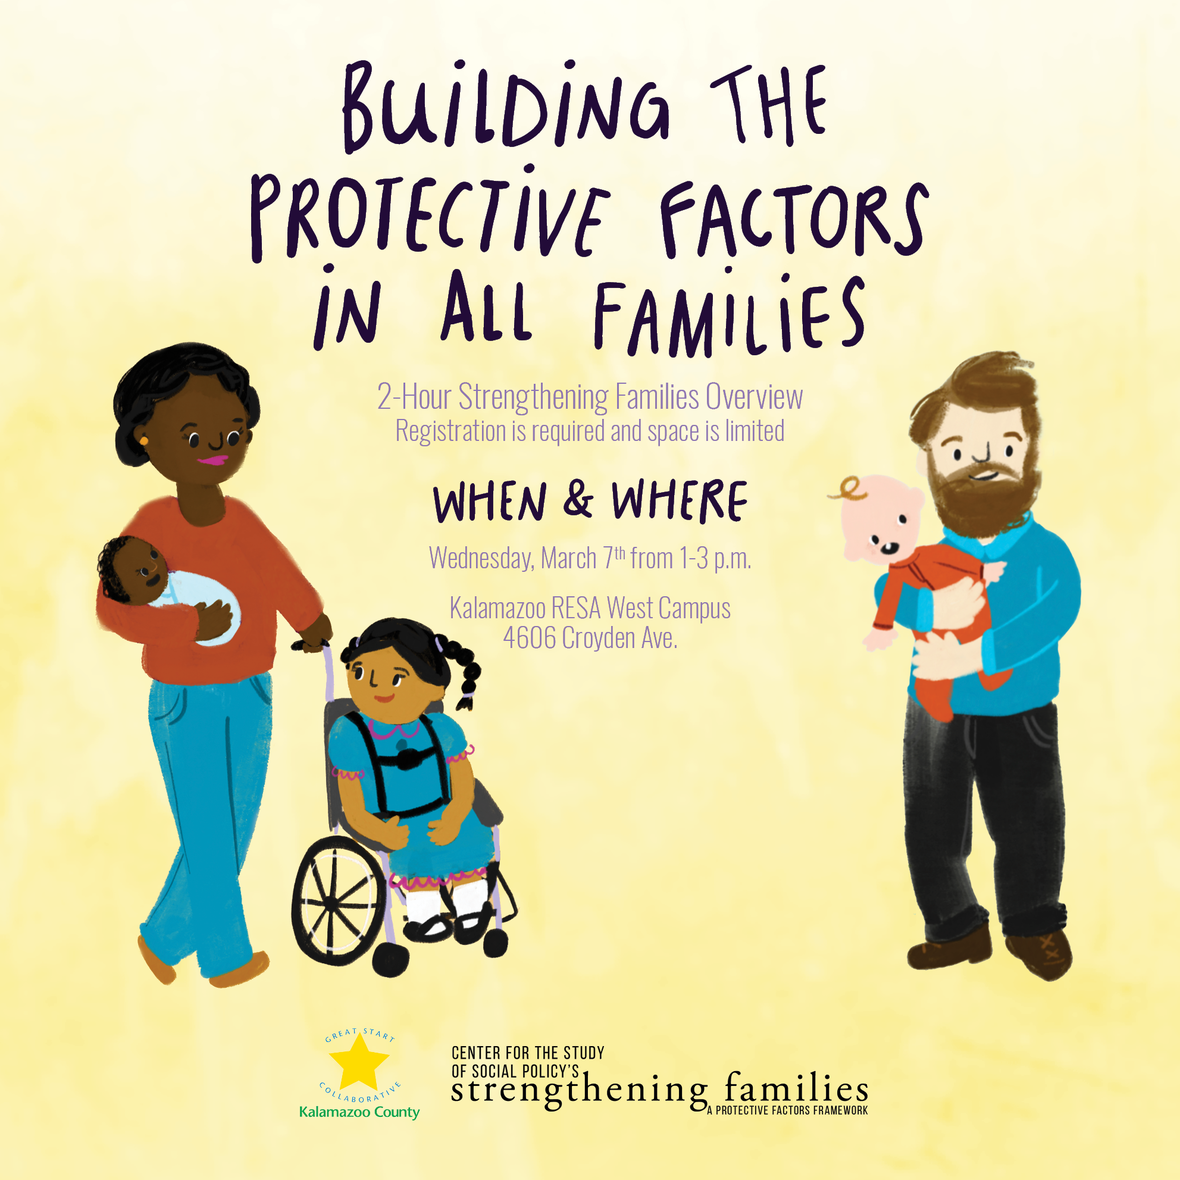 GSC ProtectiveFactors Event March